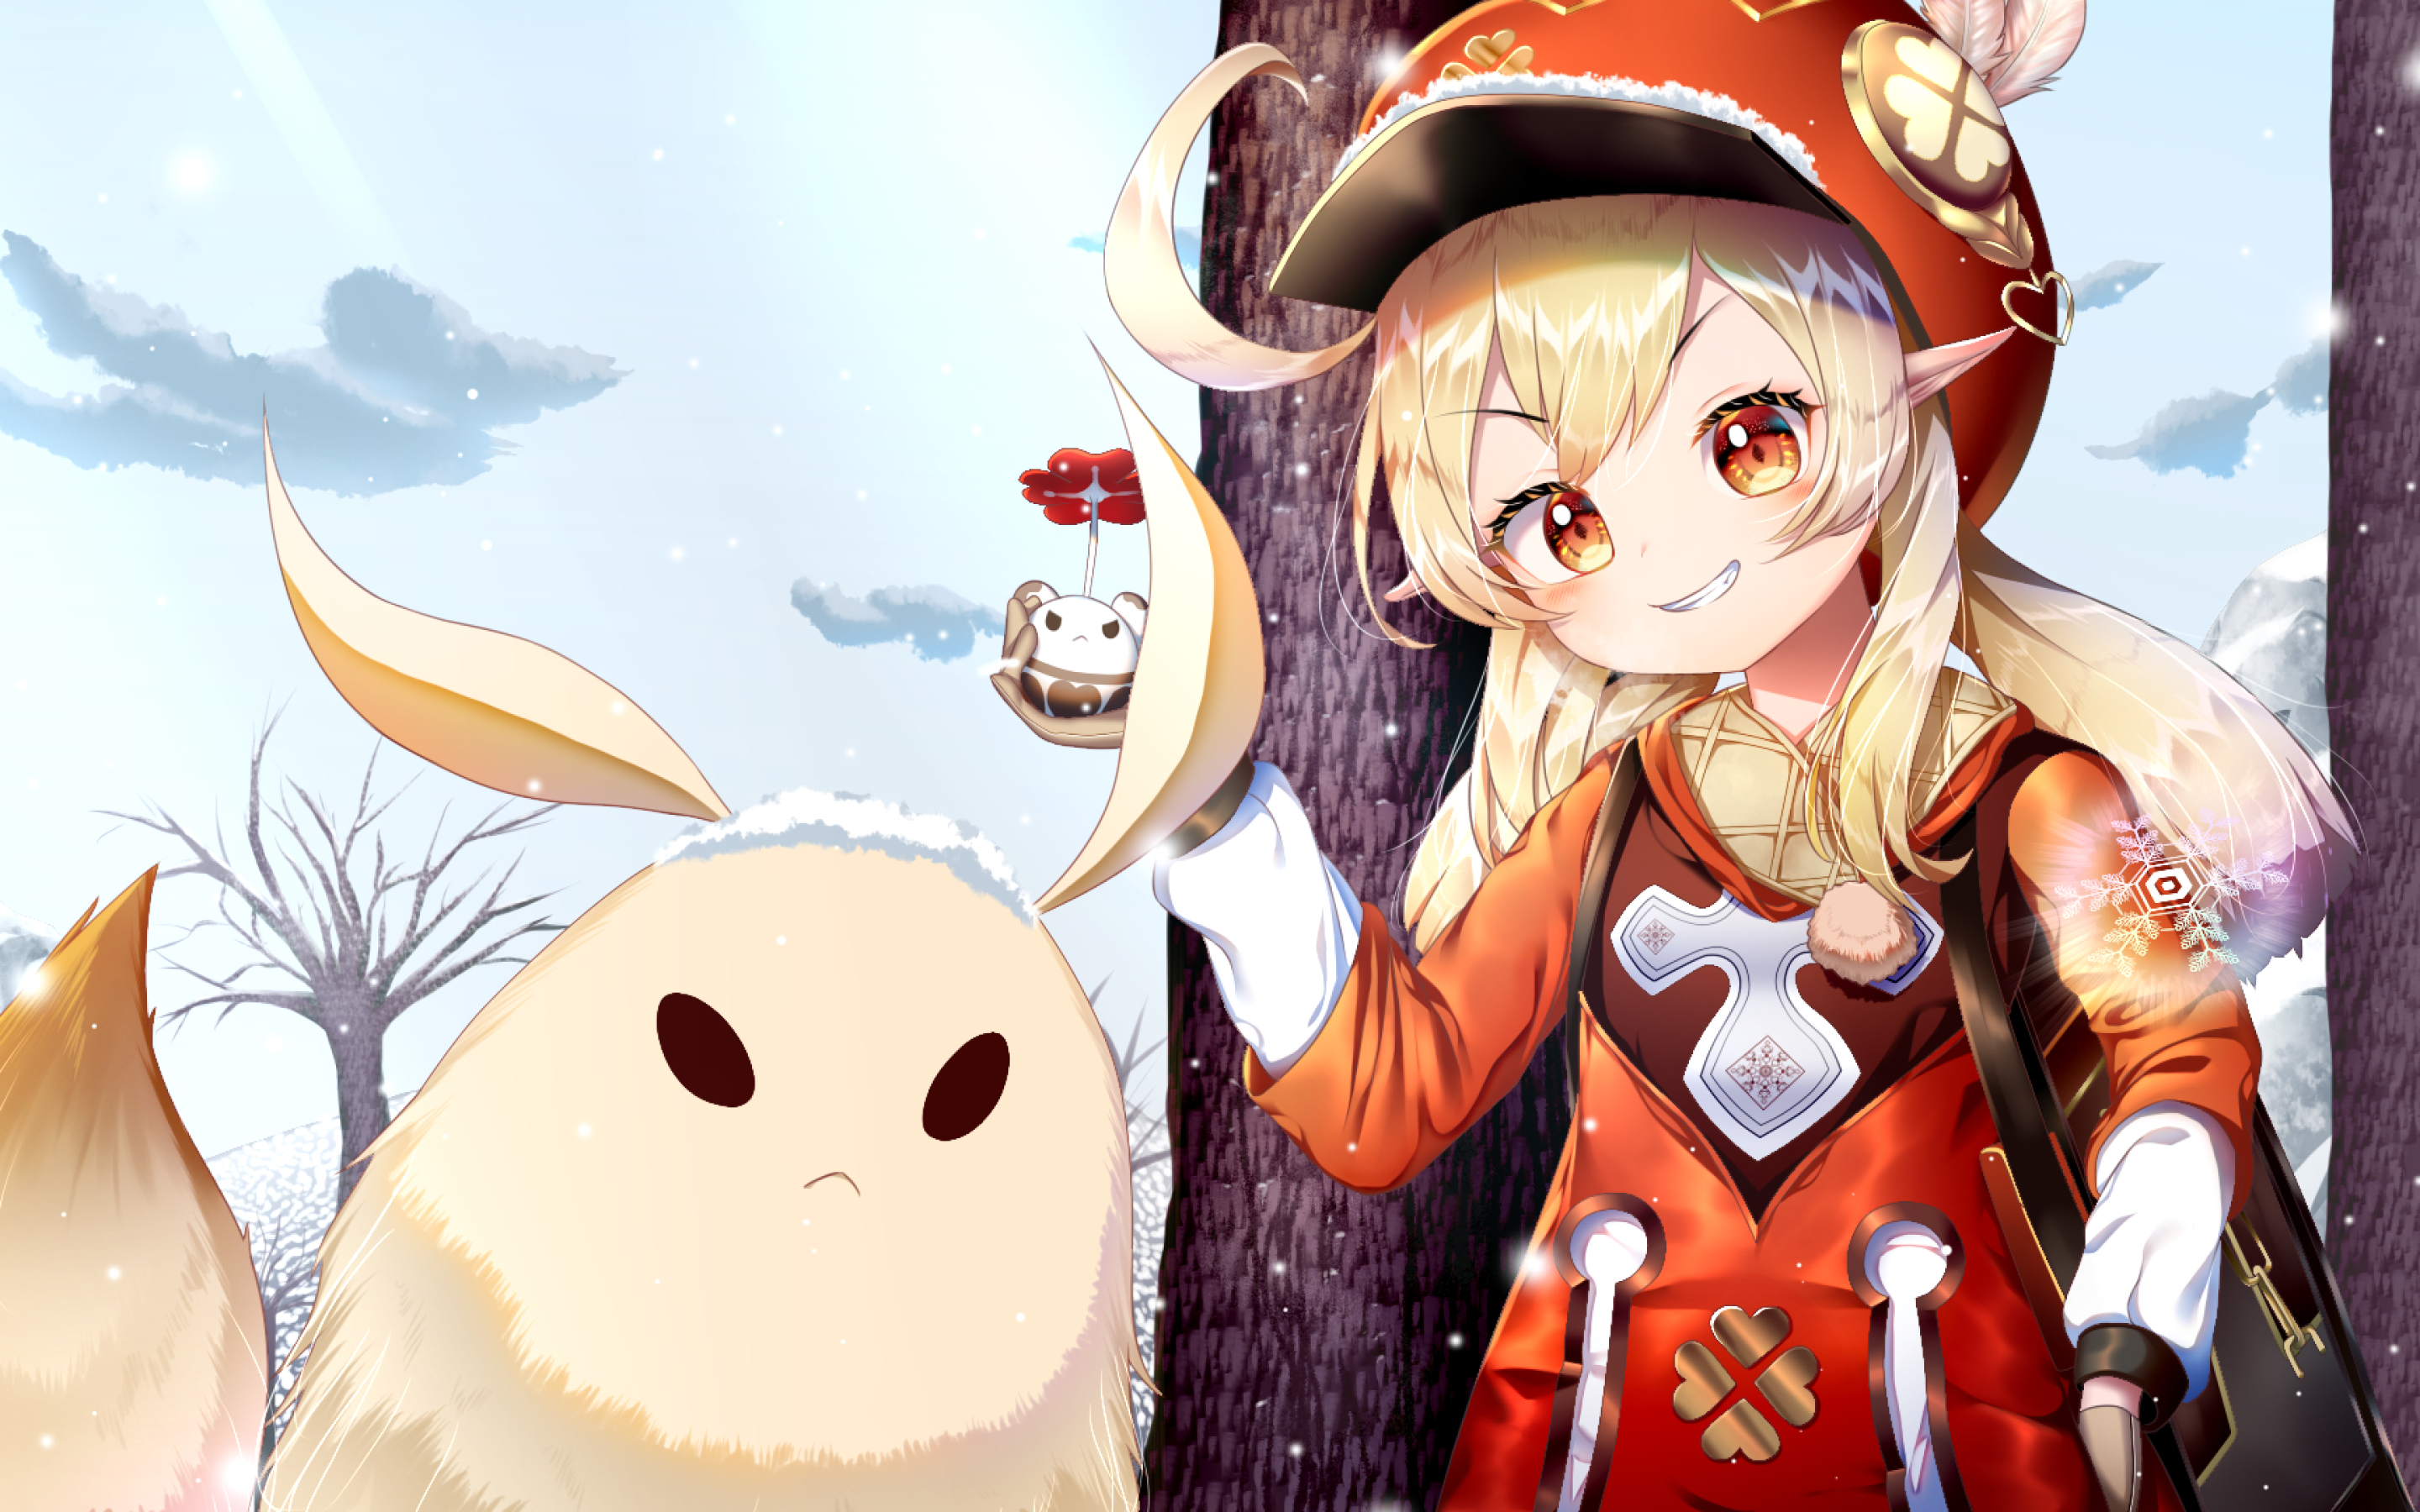 Klee Genshin Impact and her Pet Wallpaper in 2880x1800 Resolution